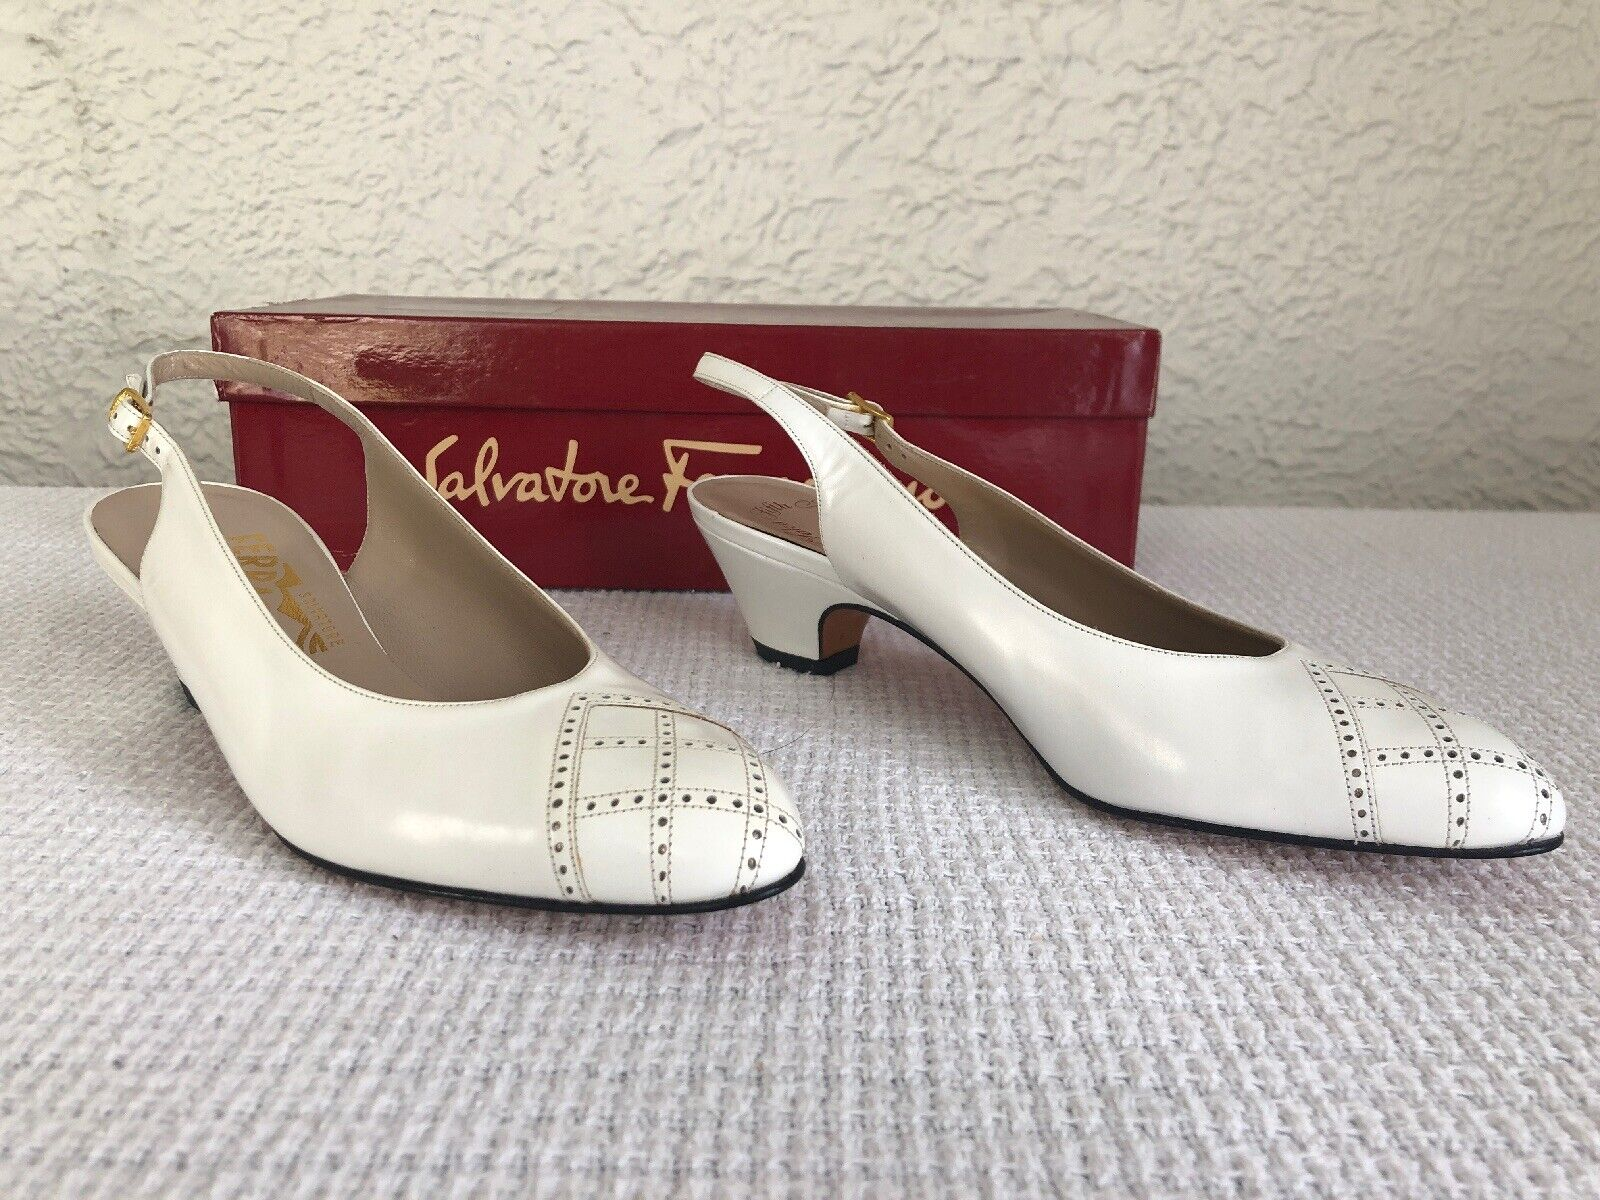 NEW Salvatore Ferragamo White Leather Slingbacks Heels 7 AA shoes